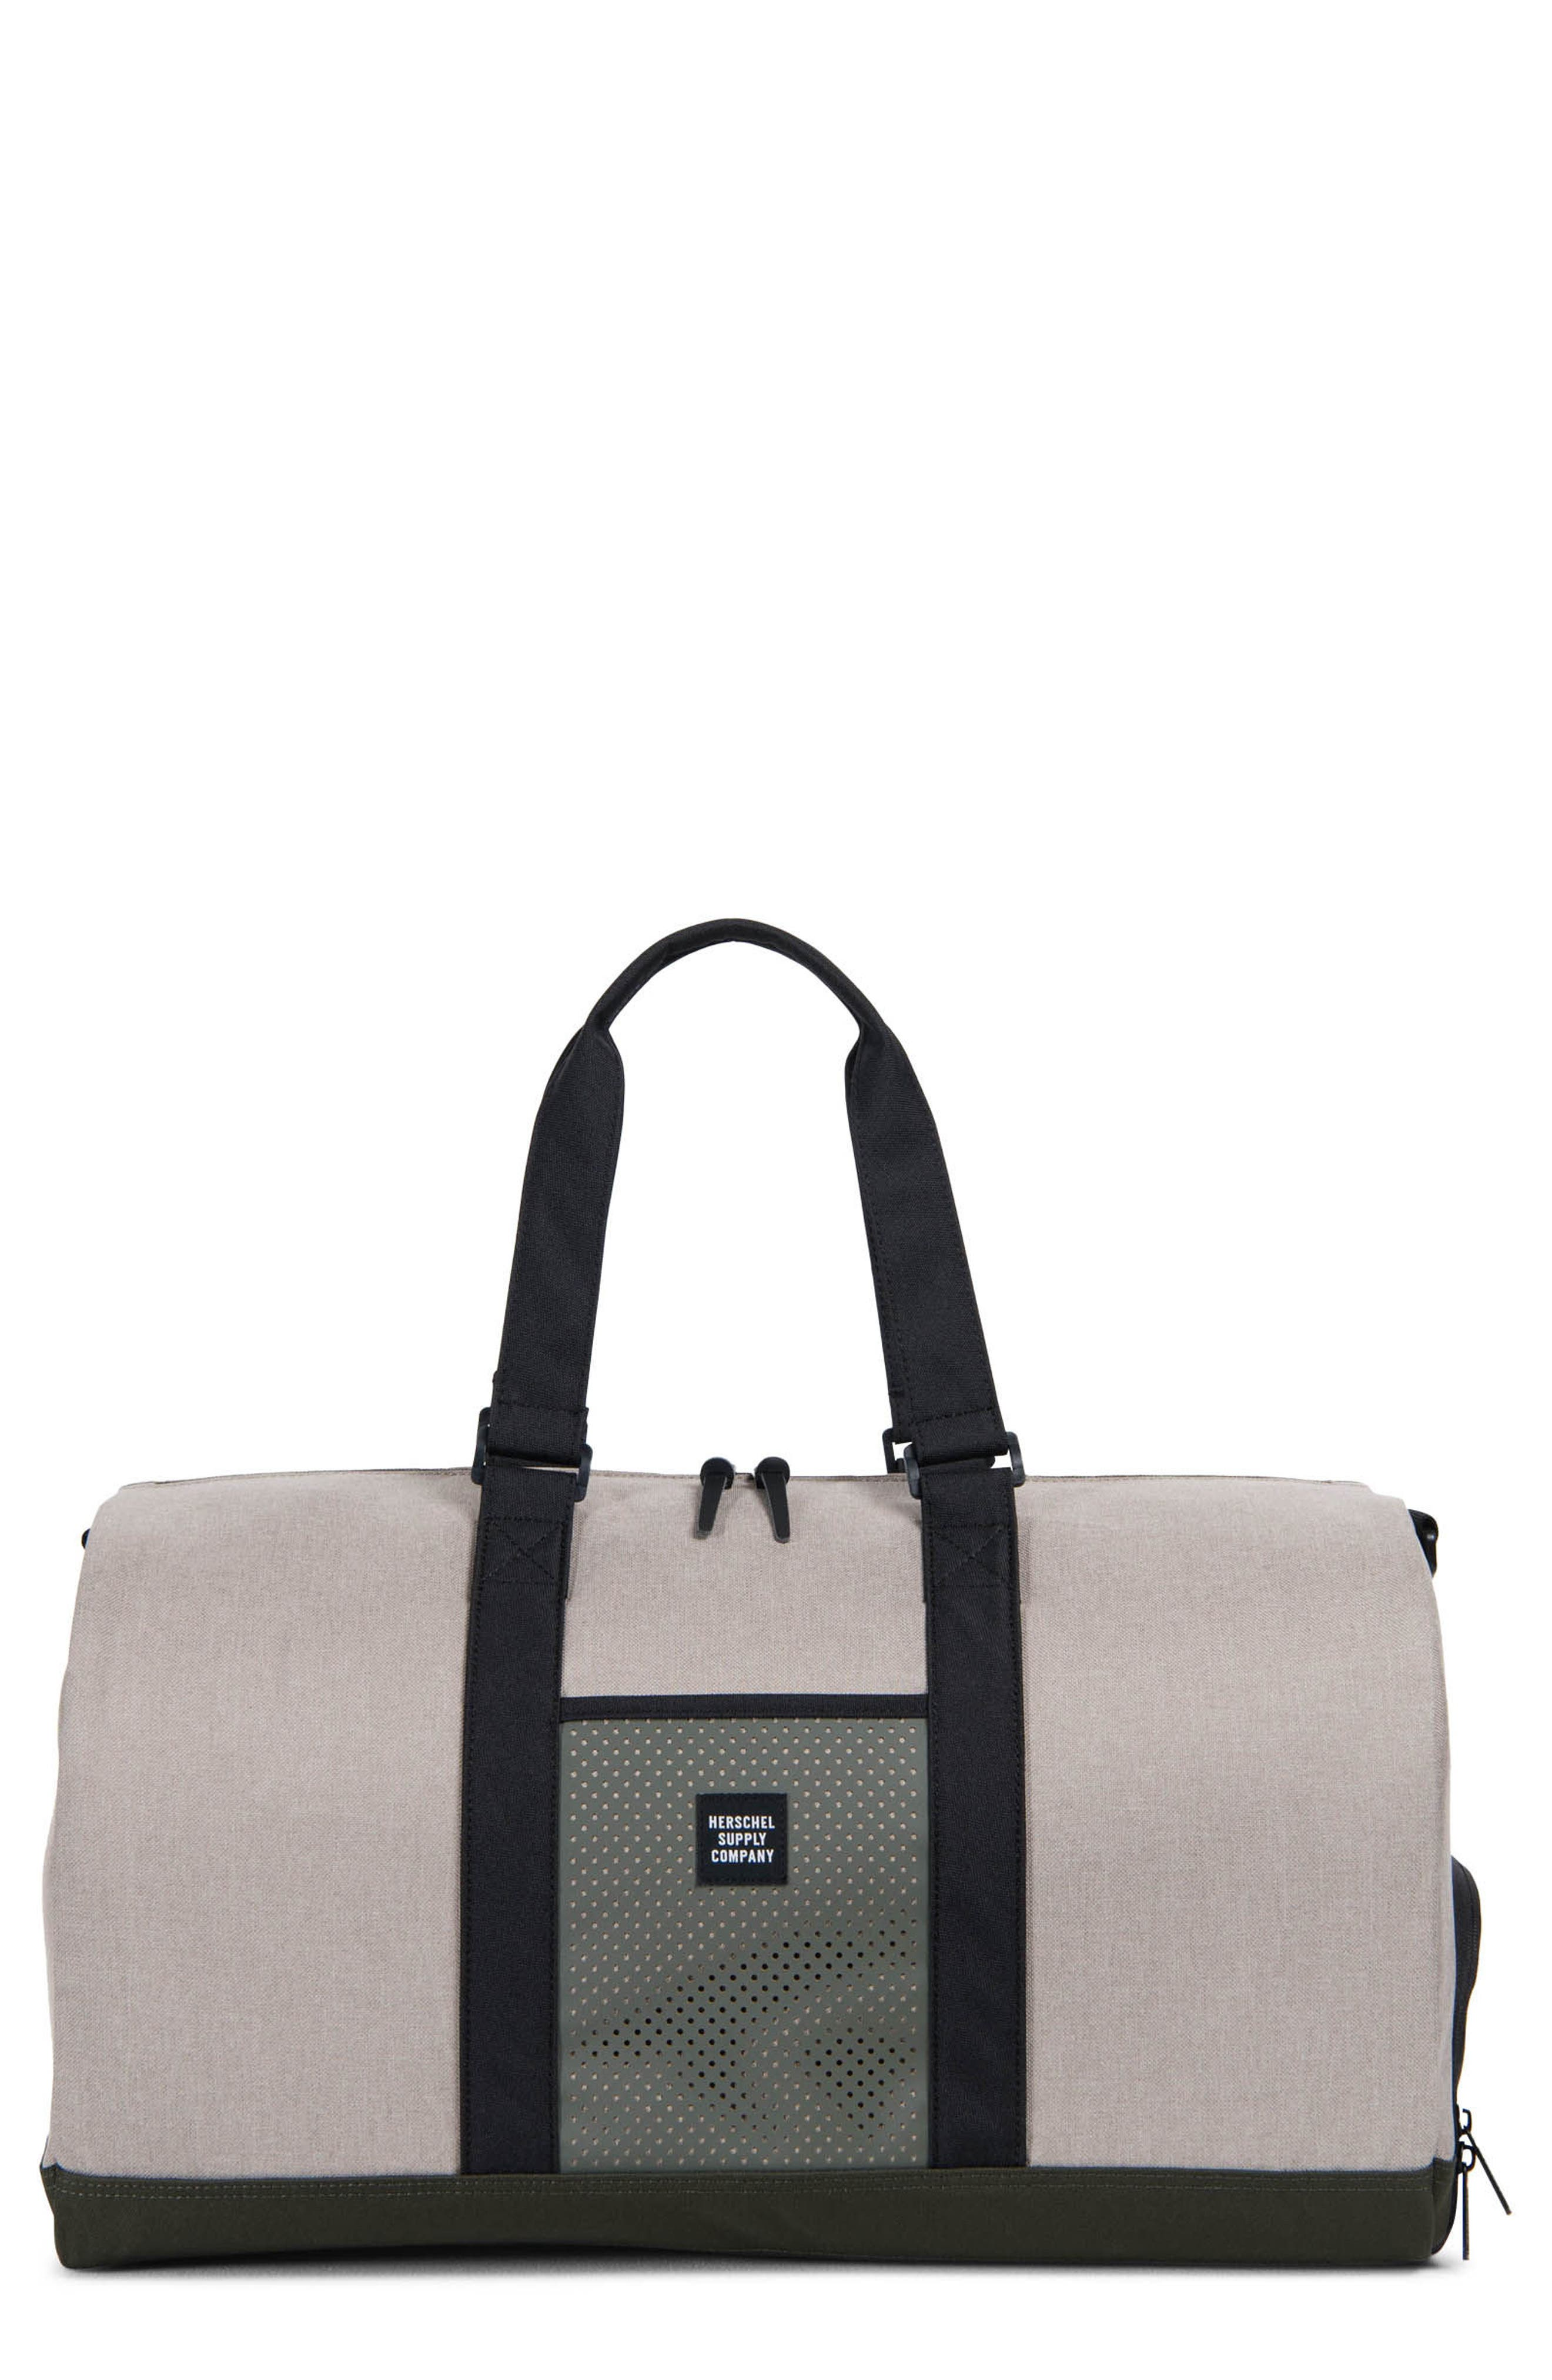 Herschel Supply Co. 'Novel - Aspect' Duffel Bag